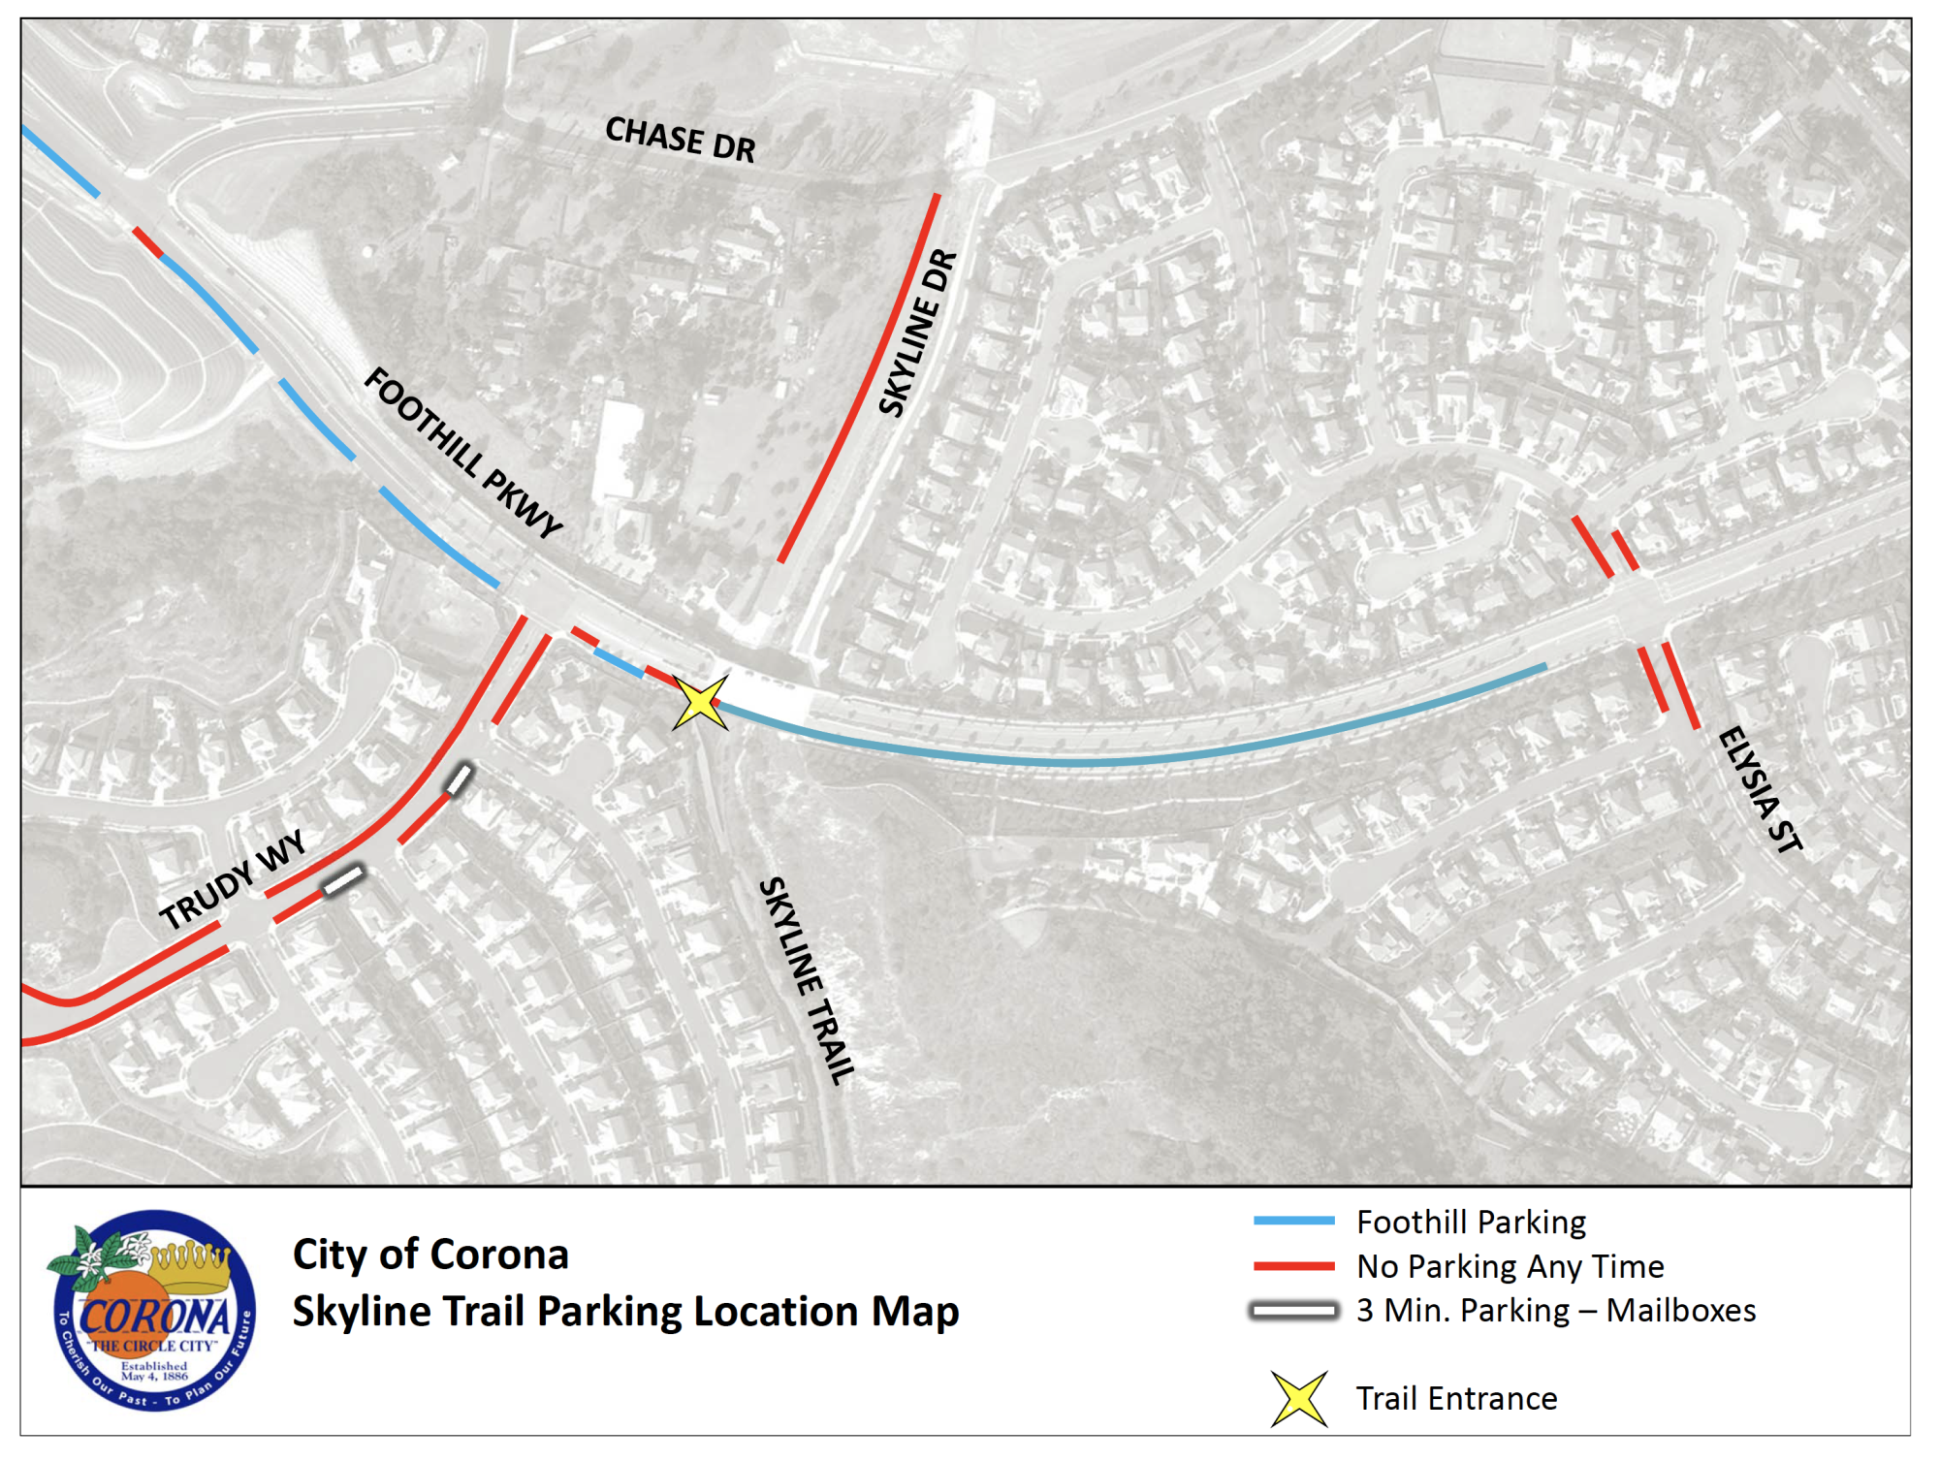 Skyline Trail Parking Location Map